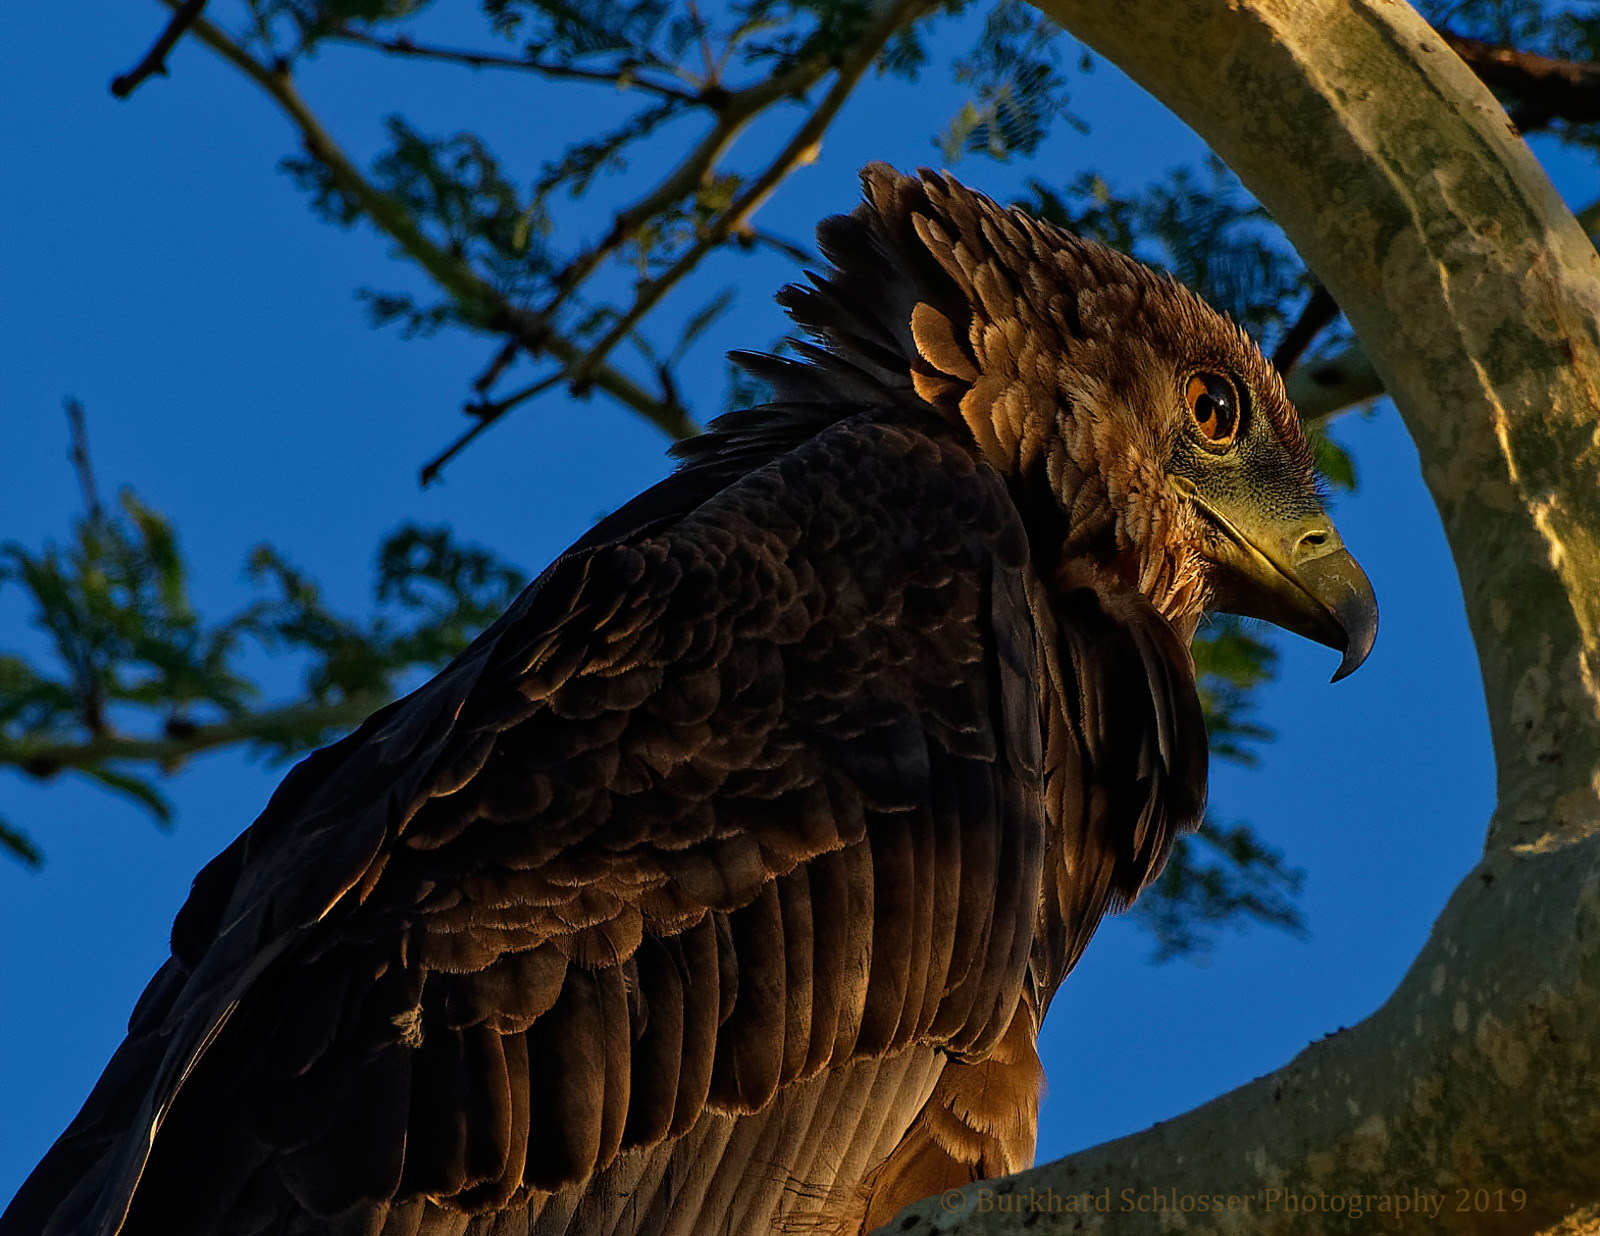 A juvenile bateleur. Manyoni Private Game Reserve, South Africa © Burkhard Schlosser